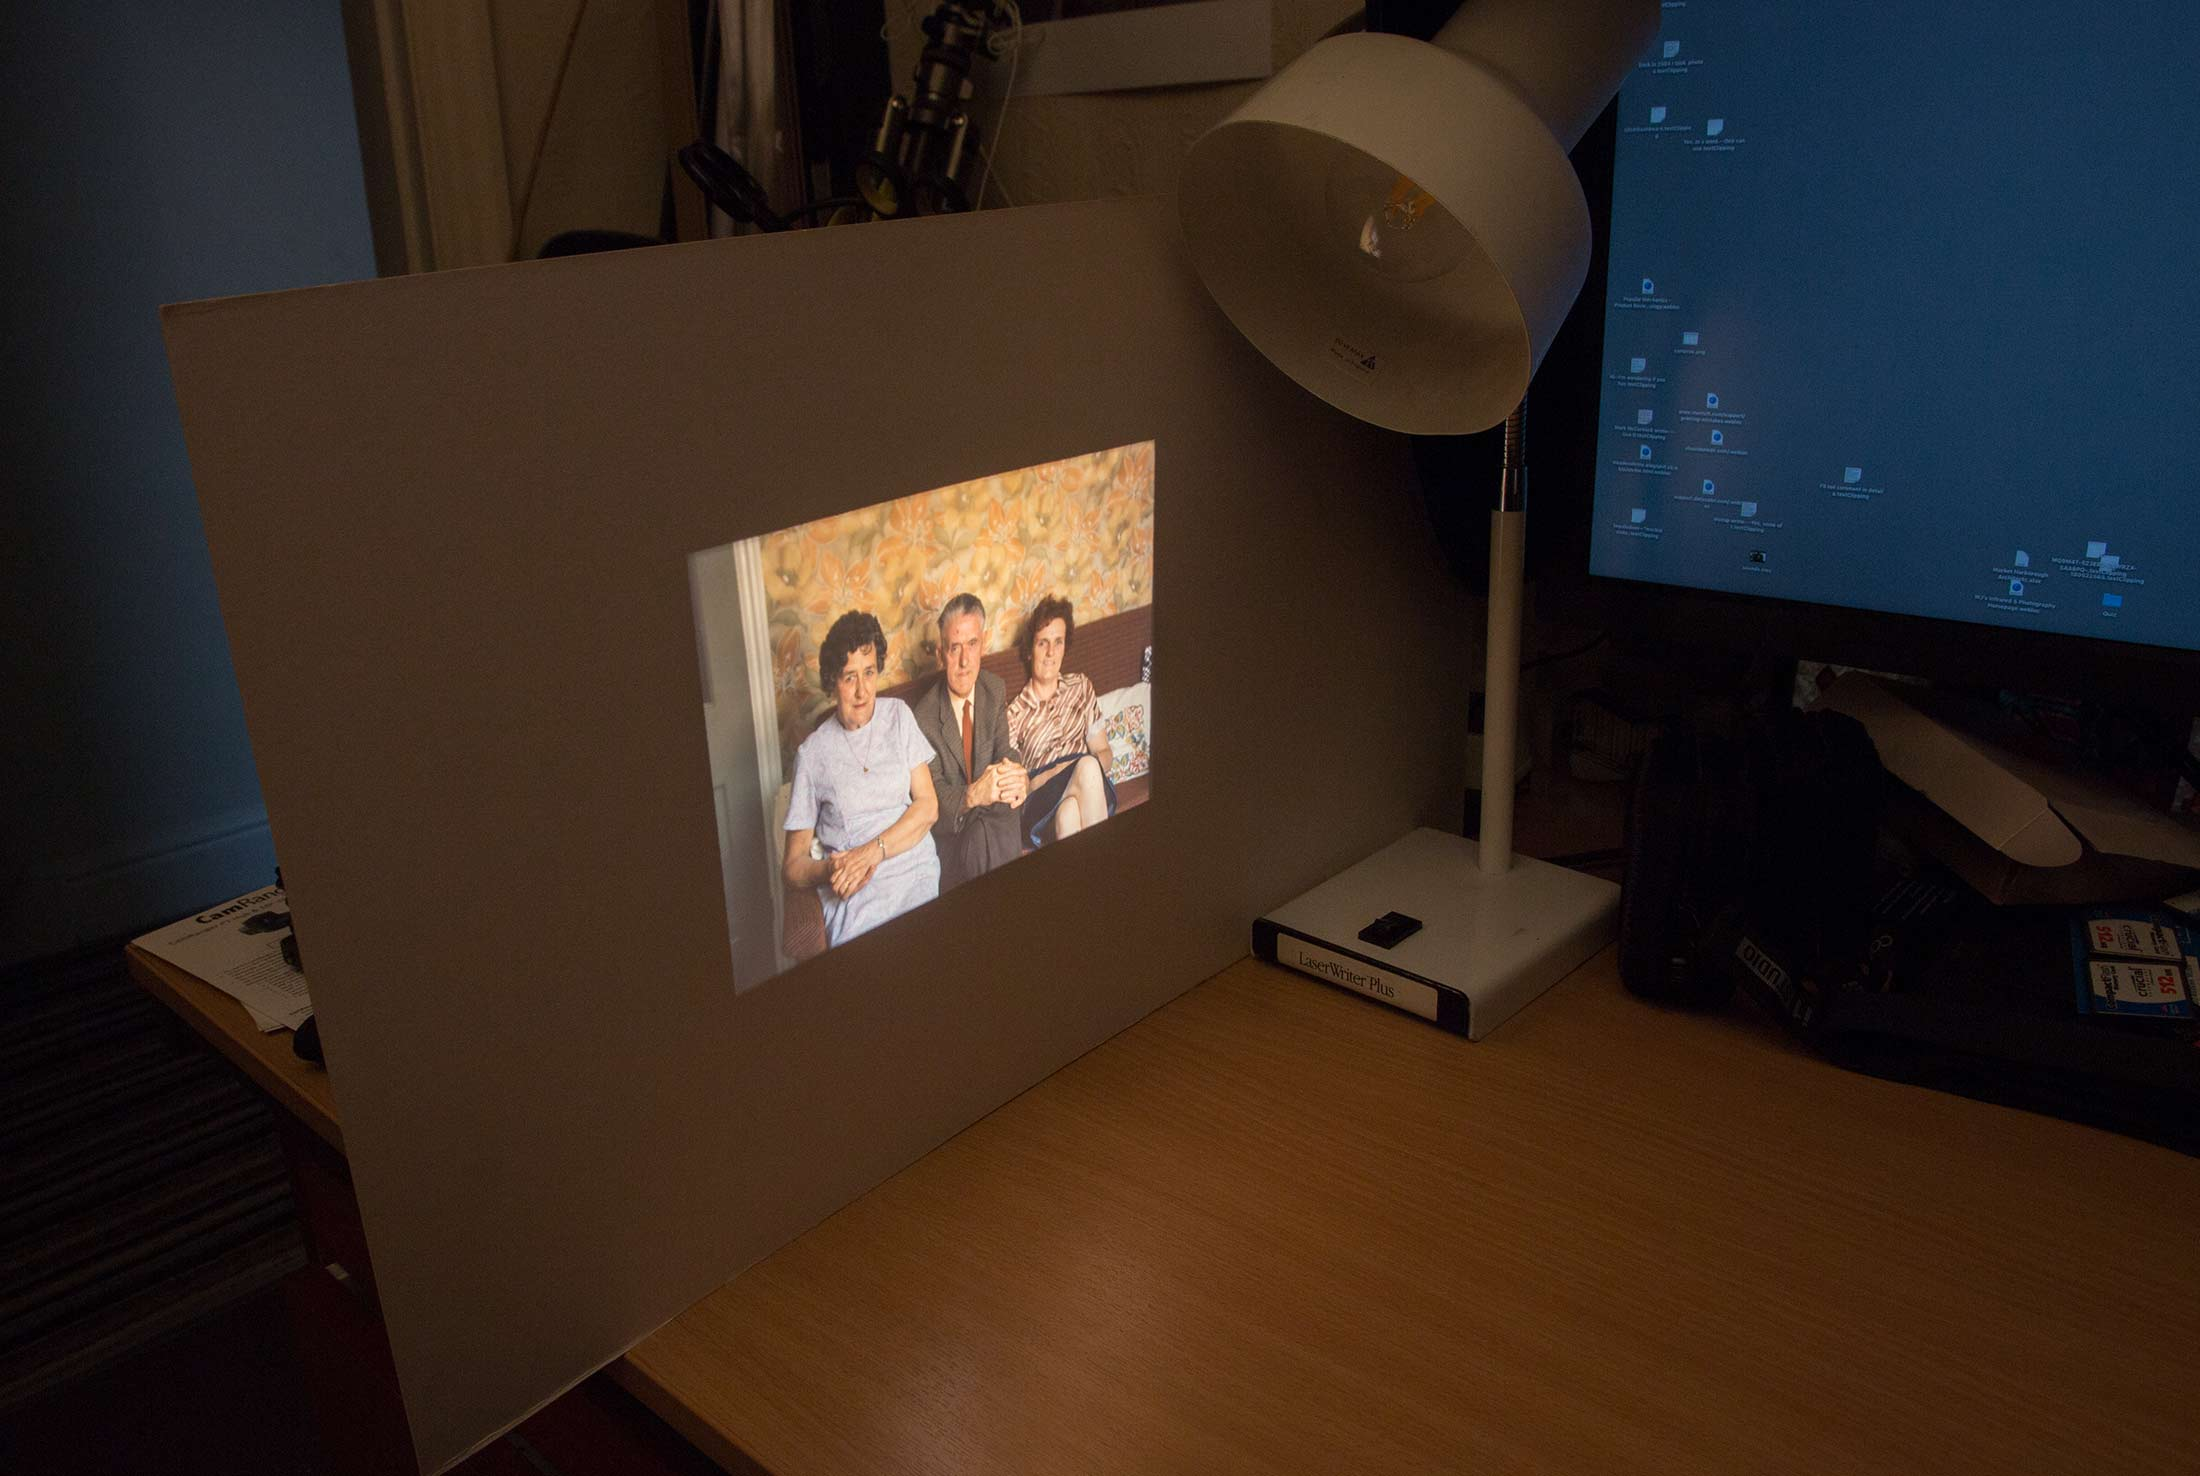 projected-image